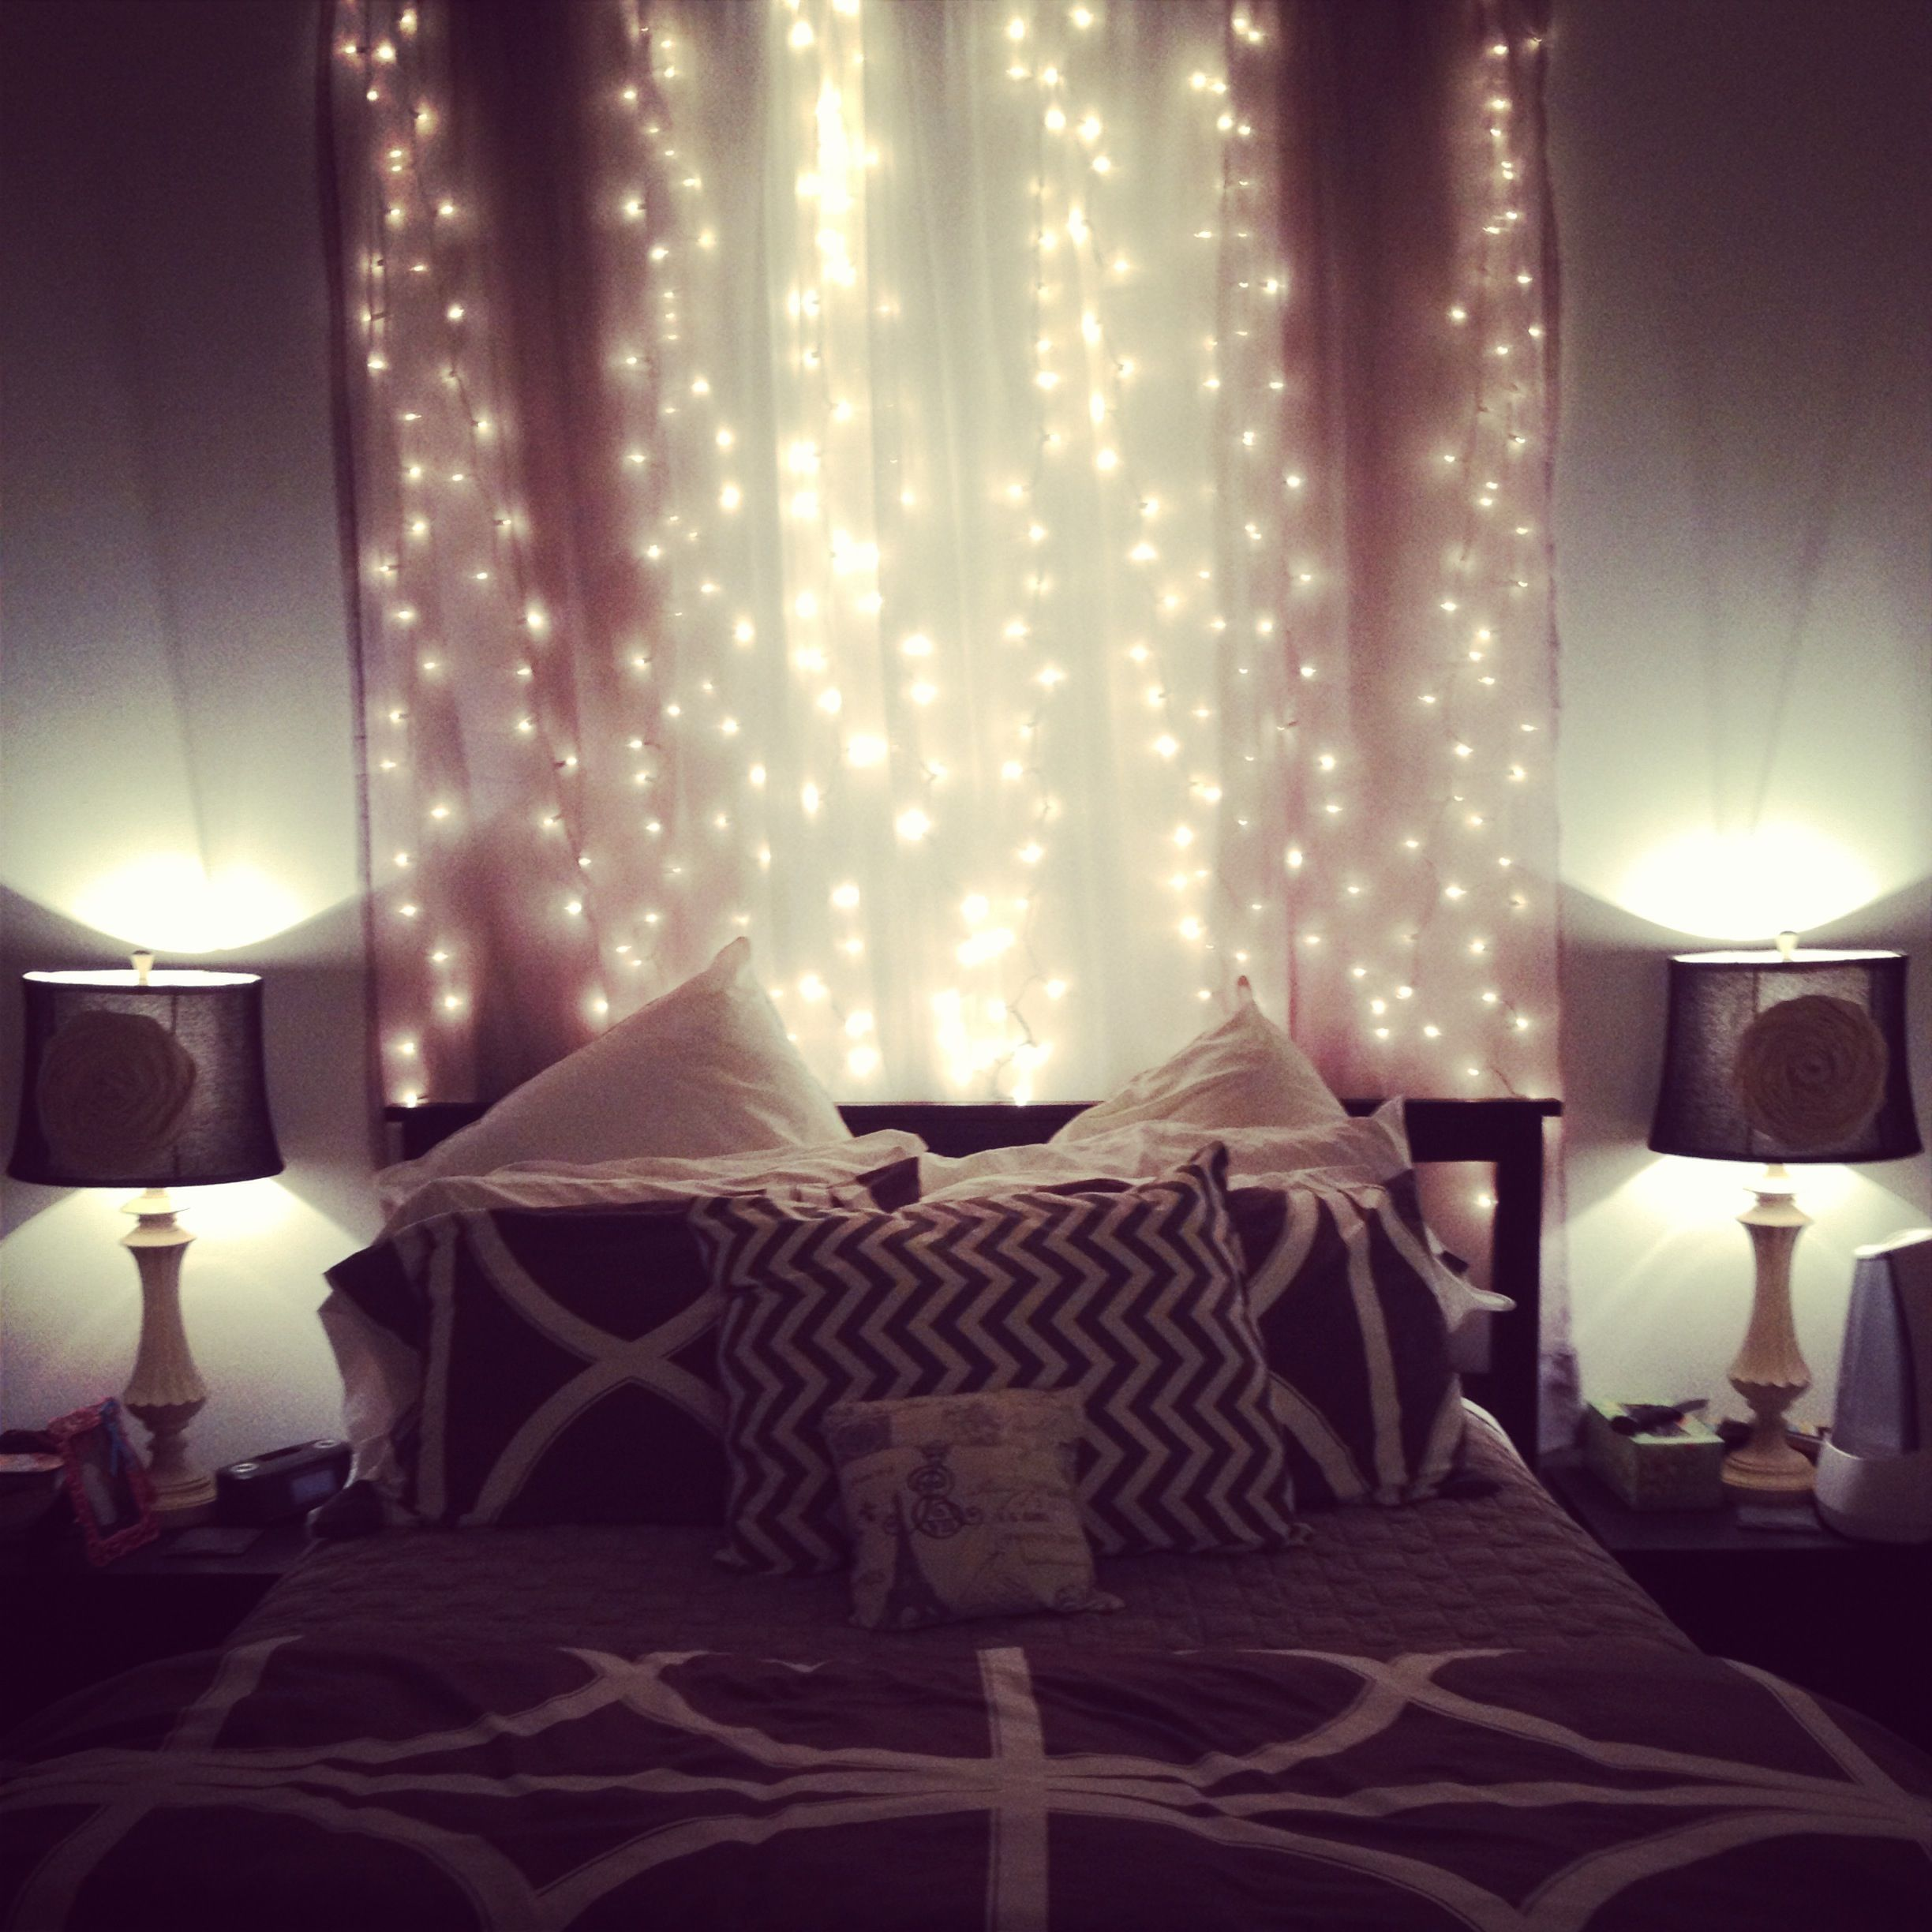 Cool Diy Bedroom Lighting Decoration Ideas: Fairy Lights In The Bedroom...